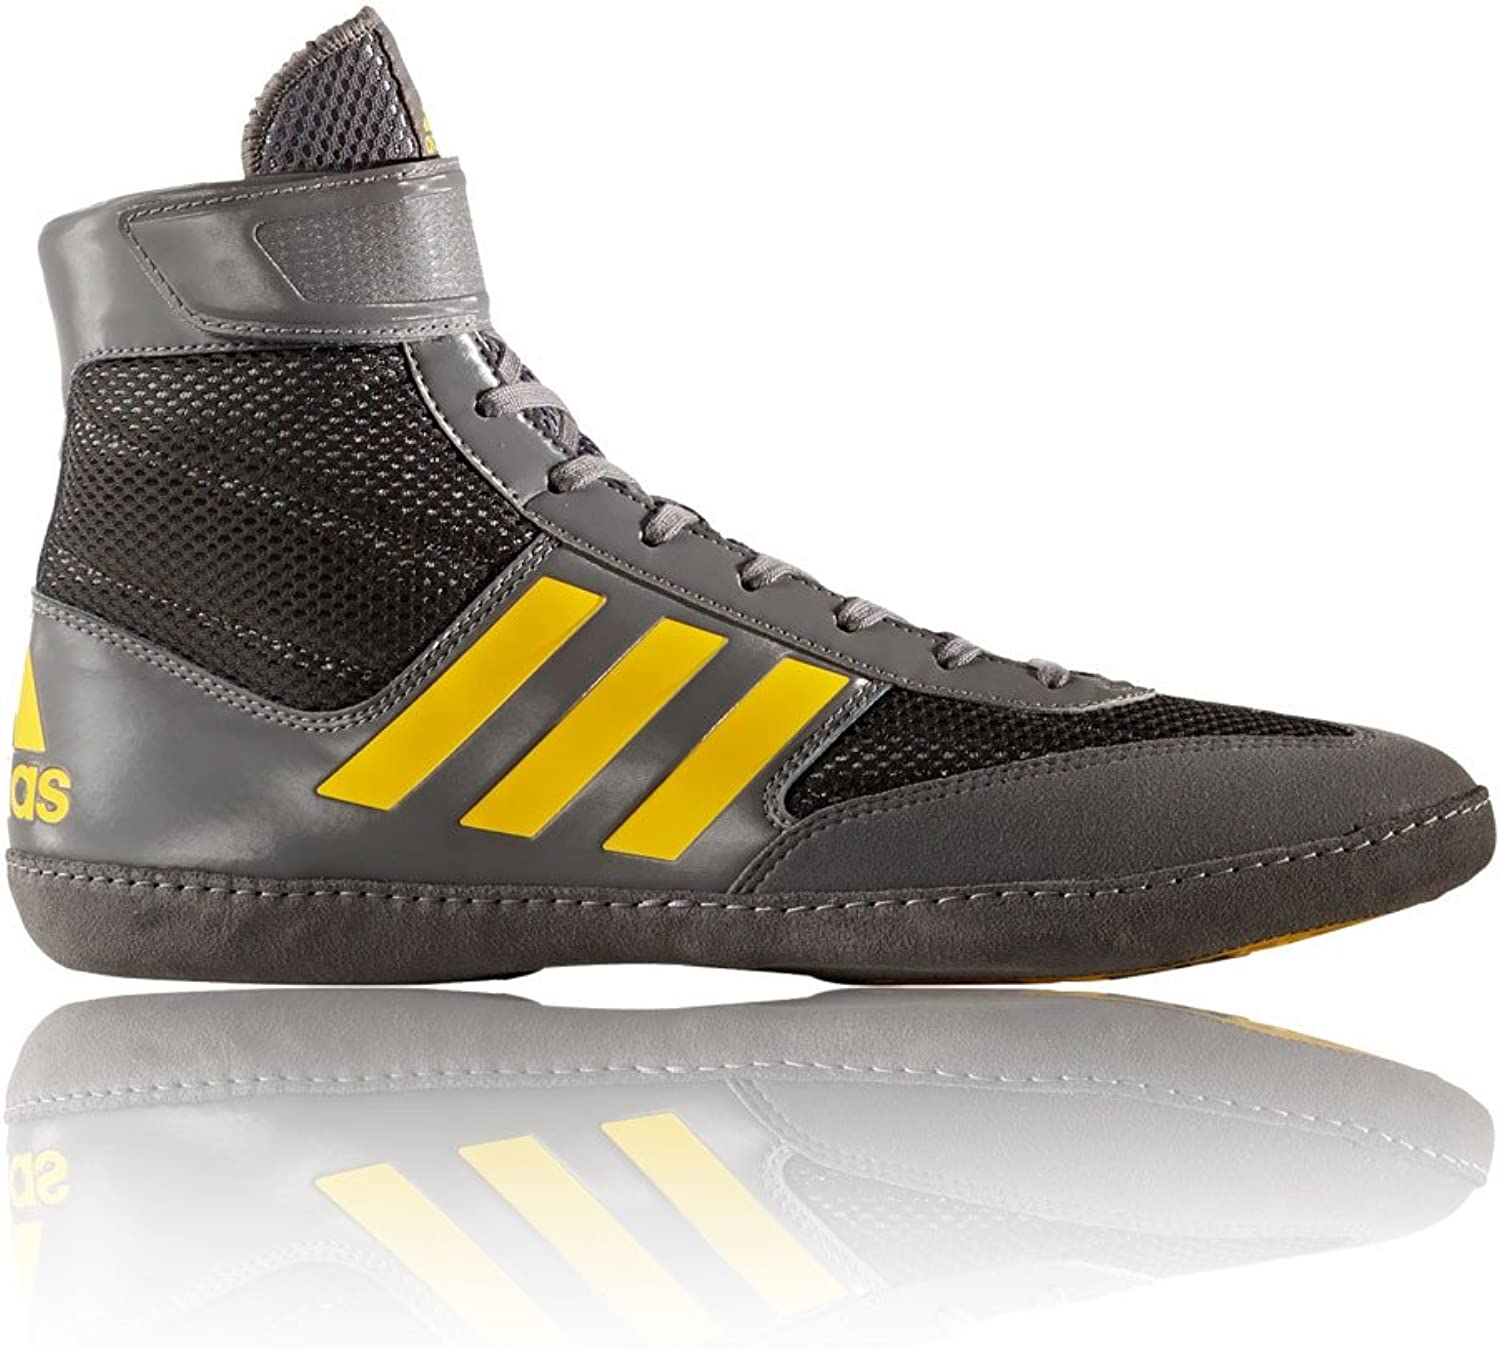 Adidas Combat Speed 5 Wrestling shoes - SS18